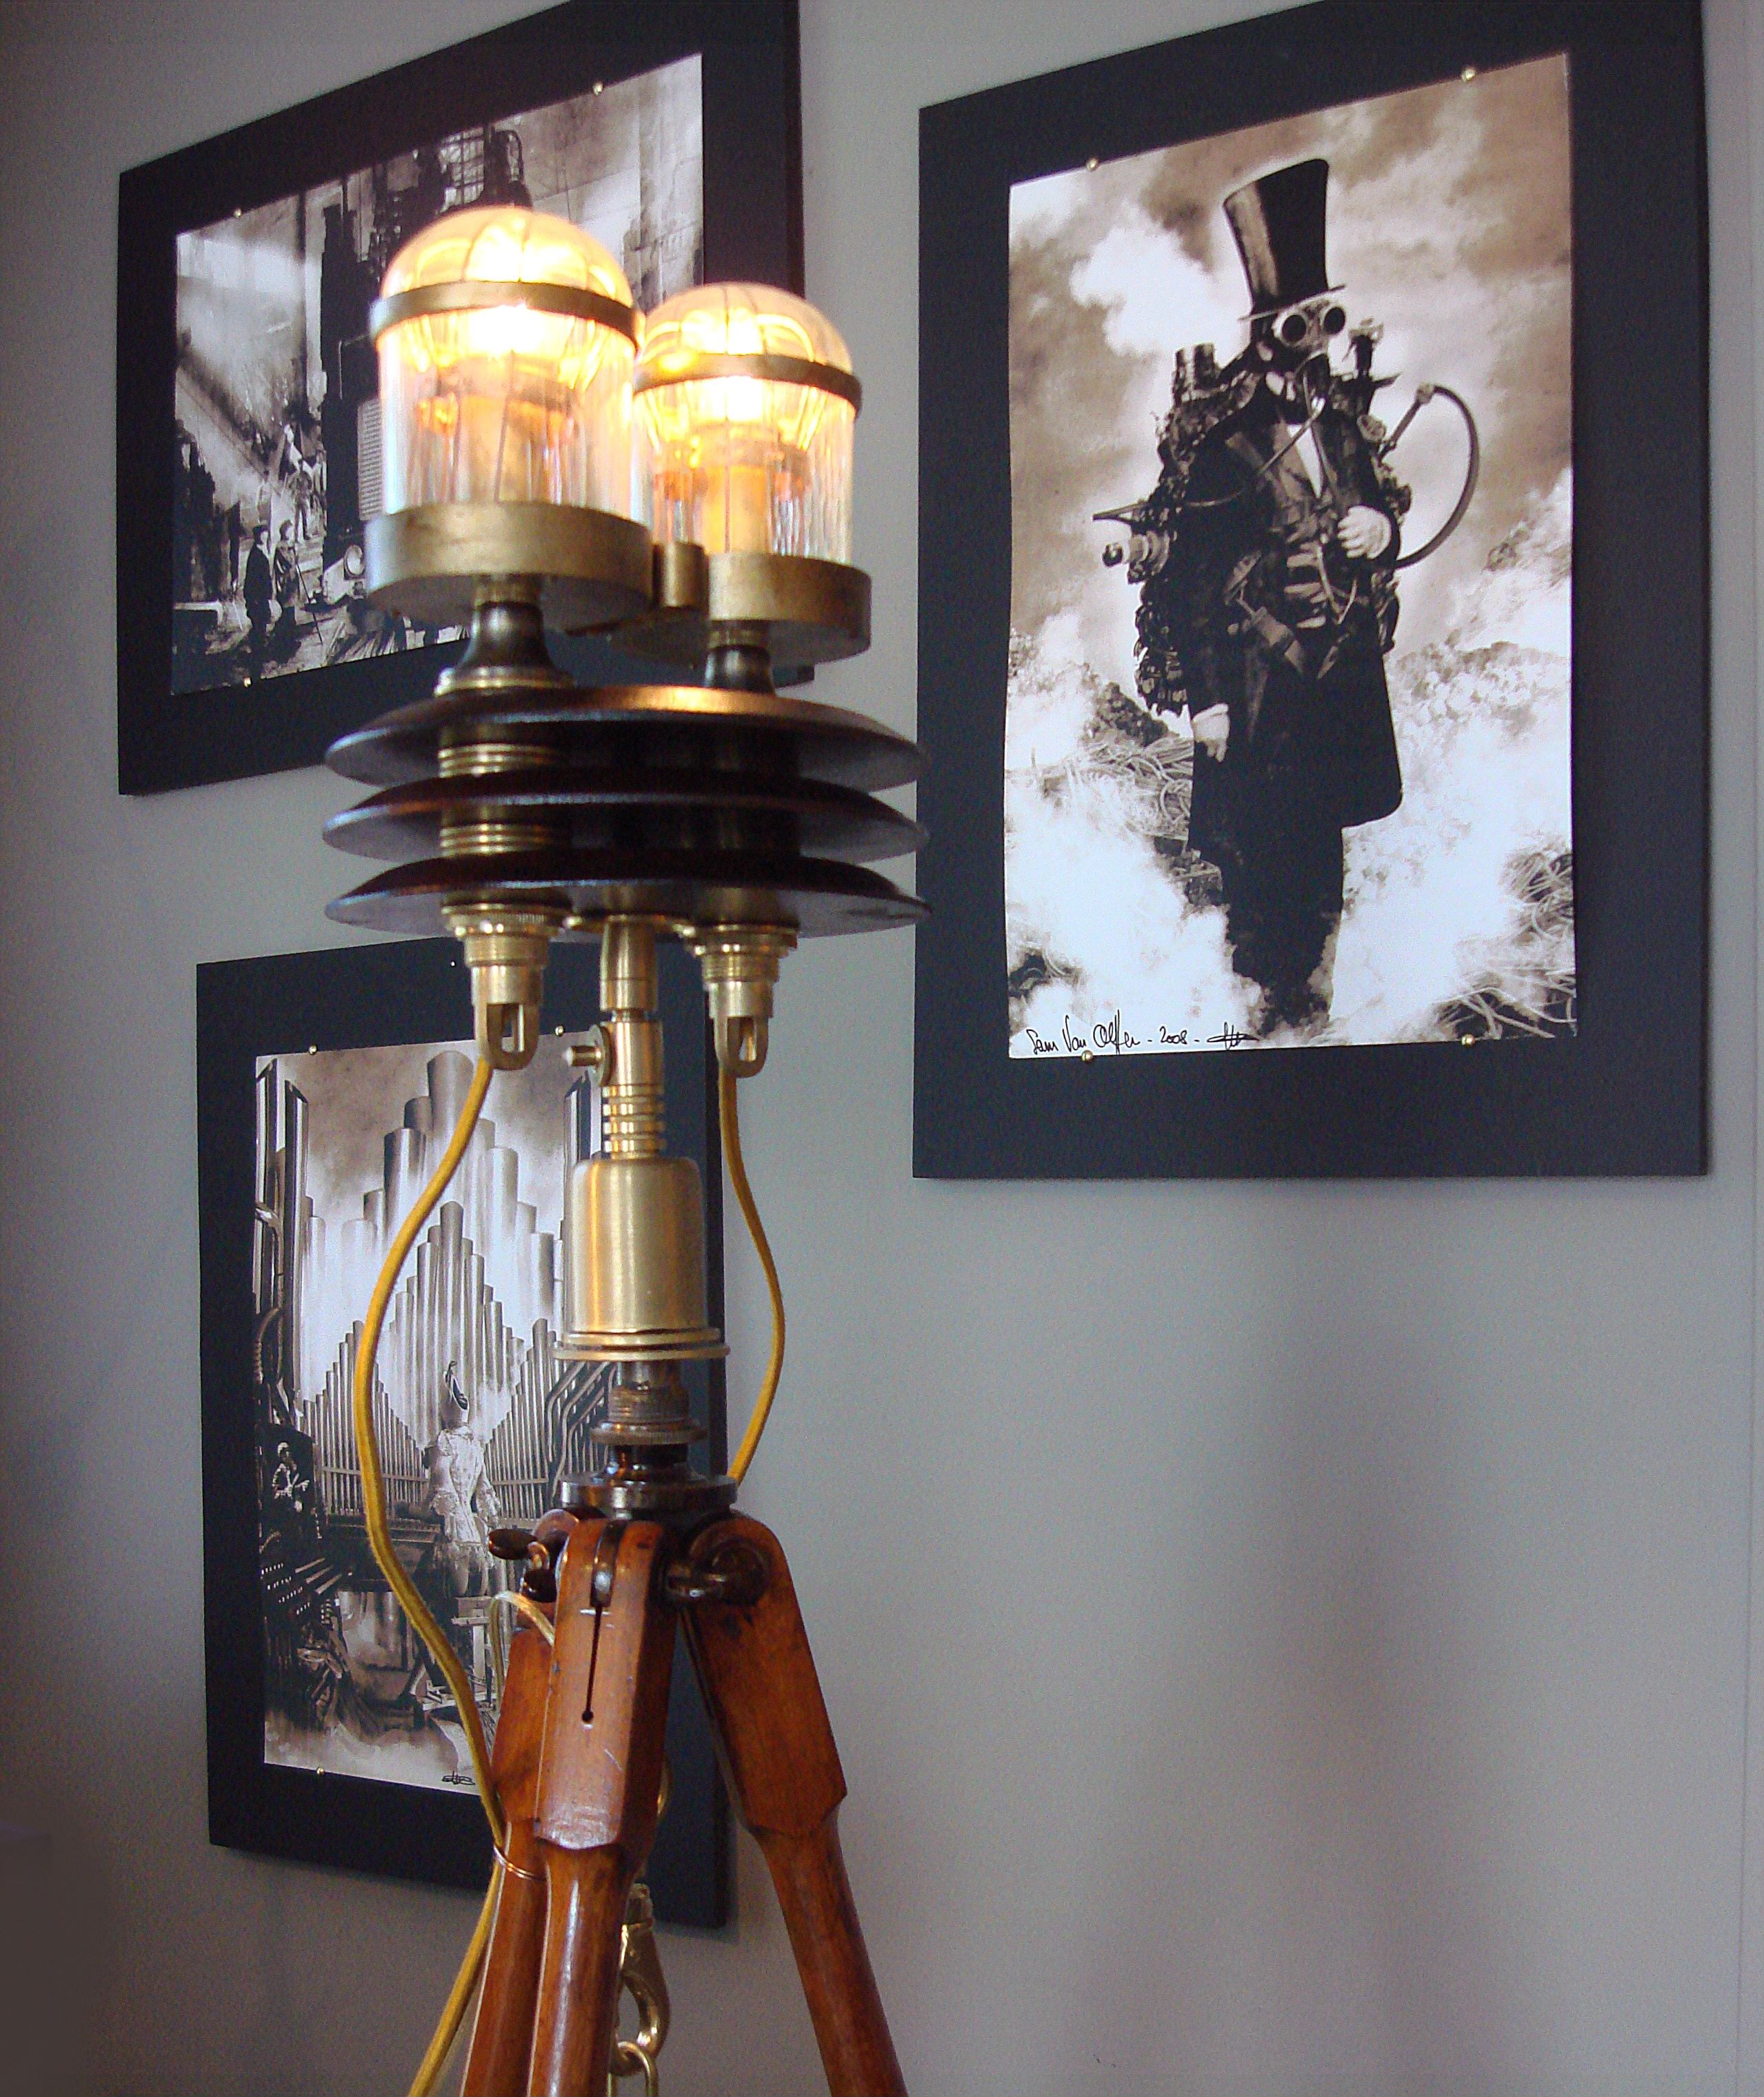 diy style lamp ideas steampunk rustic wooden lamps chic bare room home industrial bulb bookshelf carpet light depot living furniture dark floor